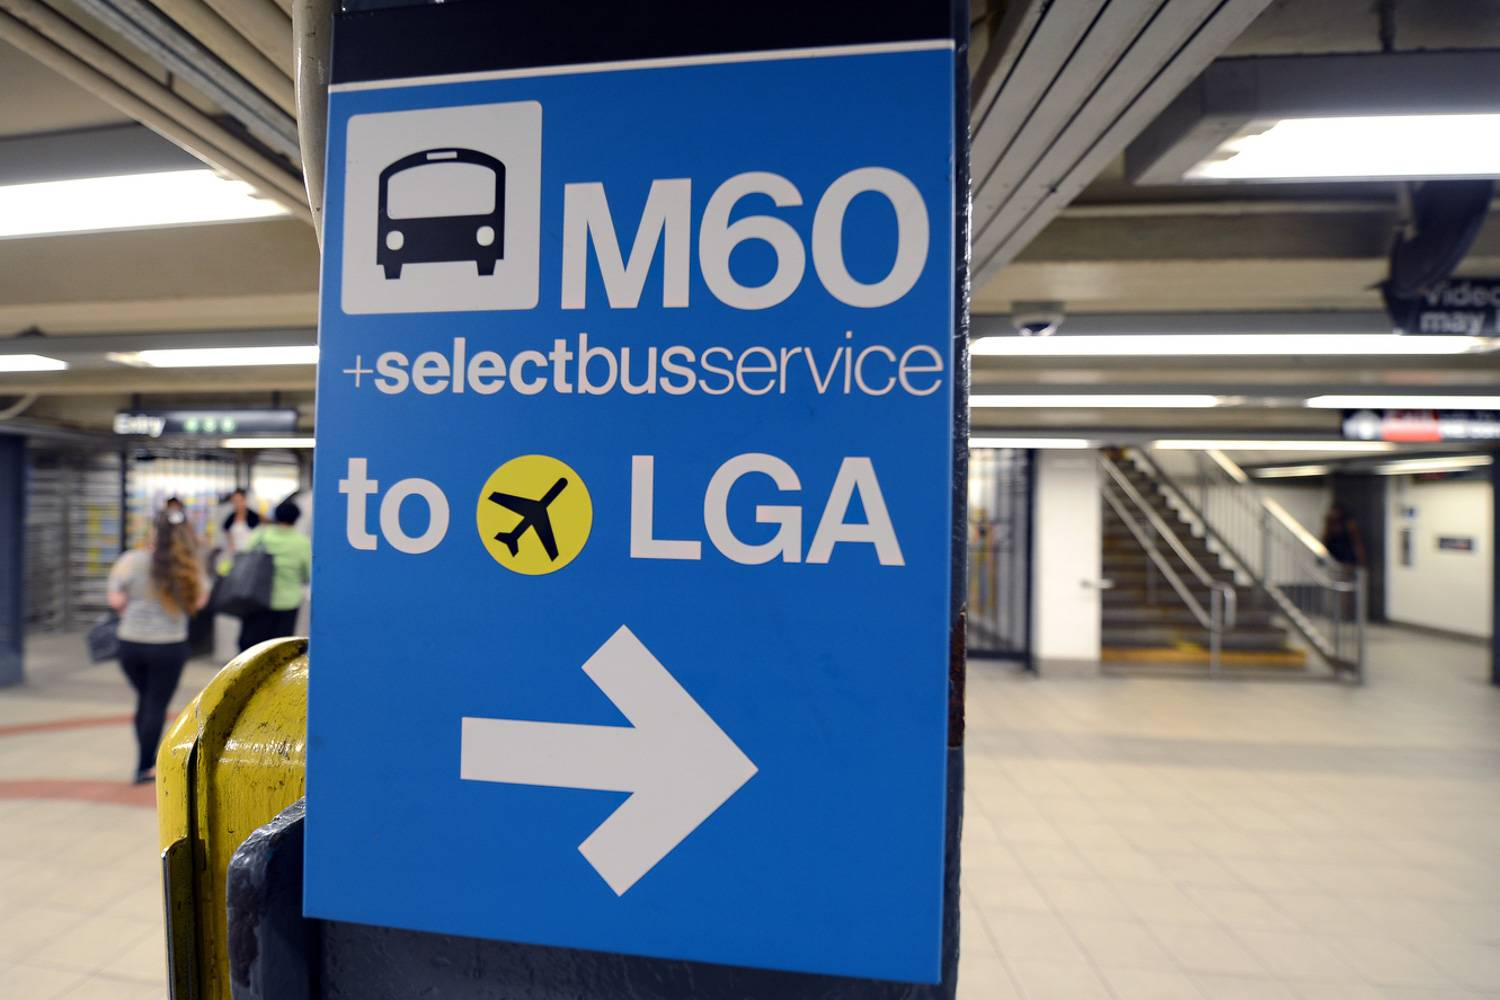 Image of a blue sign for M60 Select Bus Service to LaGuardia Airport.